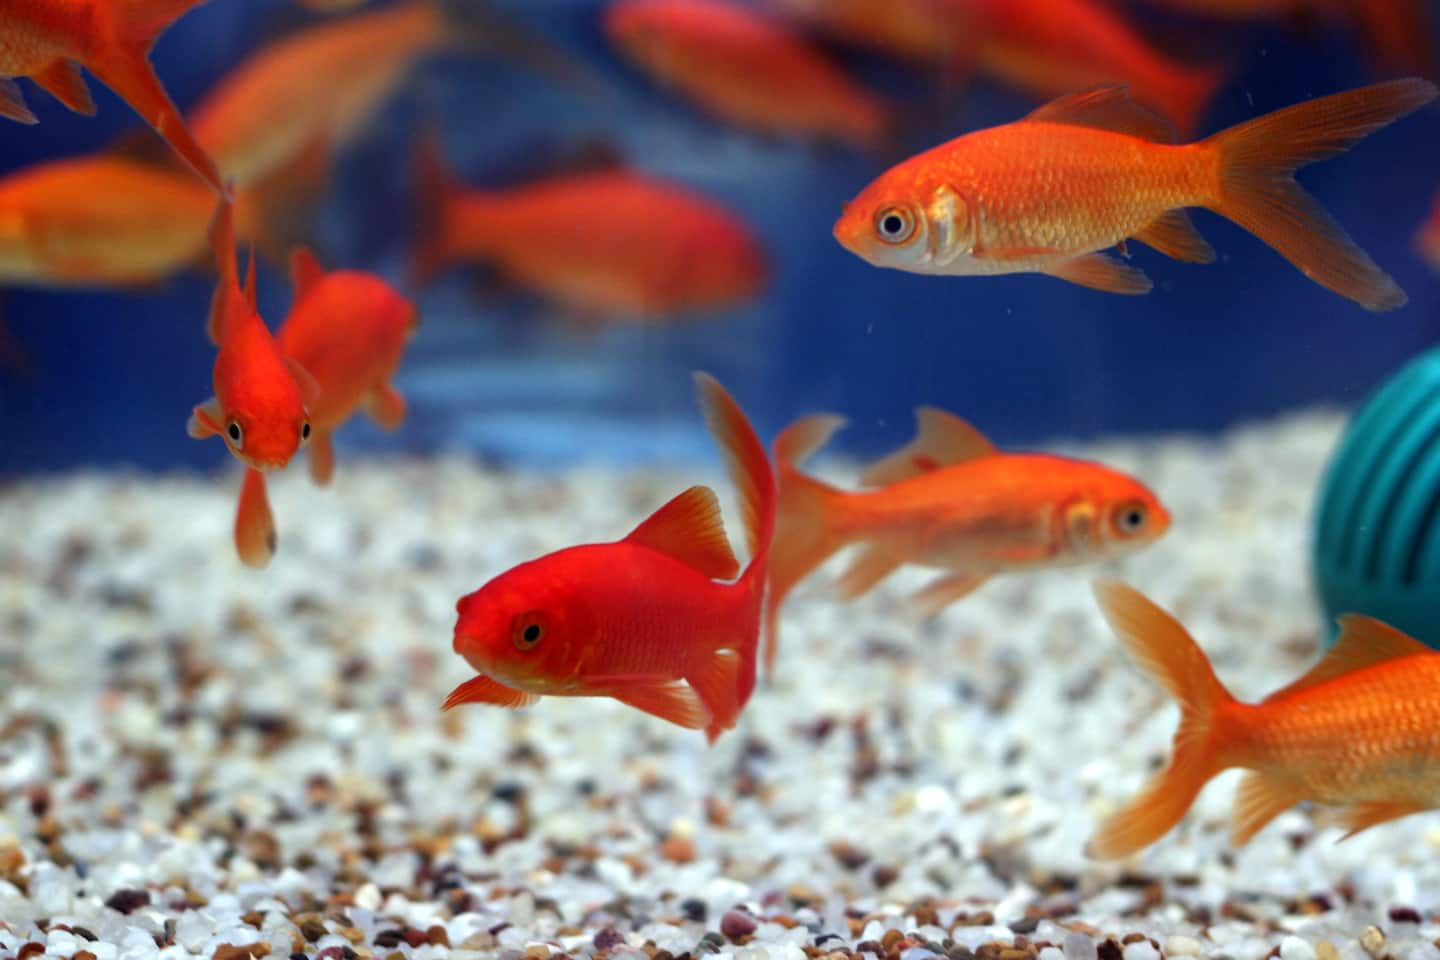 Fish tank cleaning service - How To Clean A Fish Tank